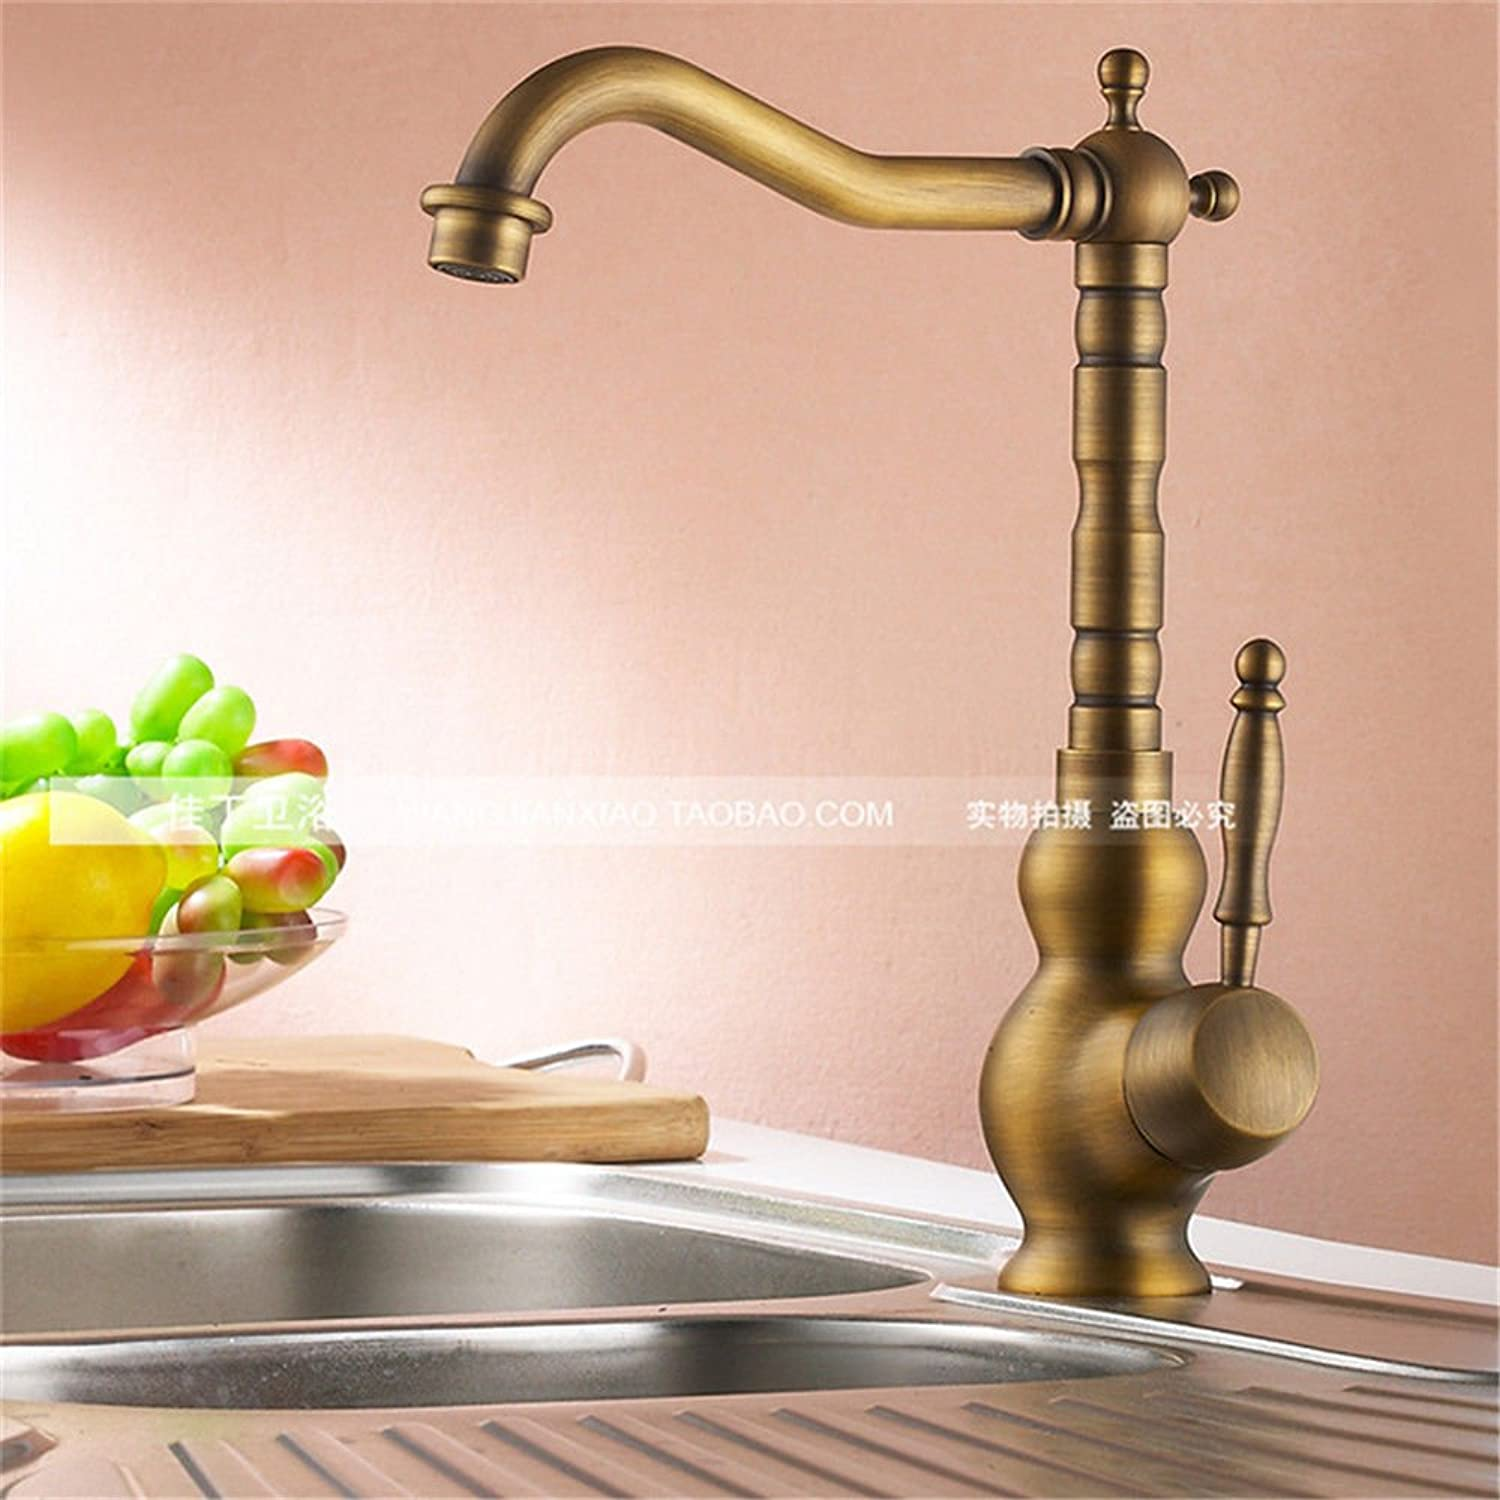 ETERNAL QUALITY Bathroom Sink Basin Tap Brass Mixer Tap Washroom Mixer Faucet All copper antique copper basin of hot and cold Kitchen Sinks Faucets antique table basin ba